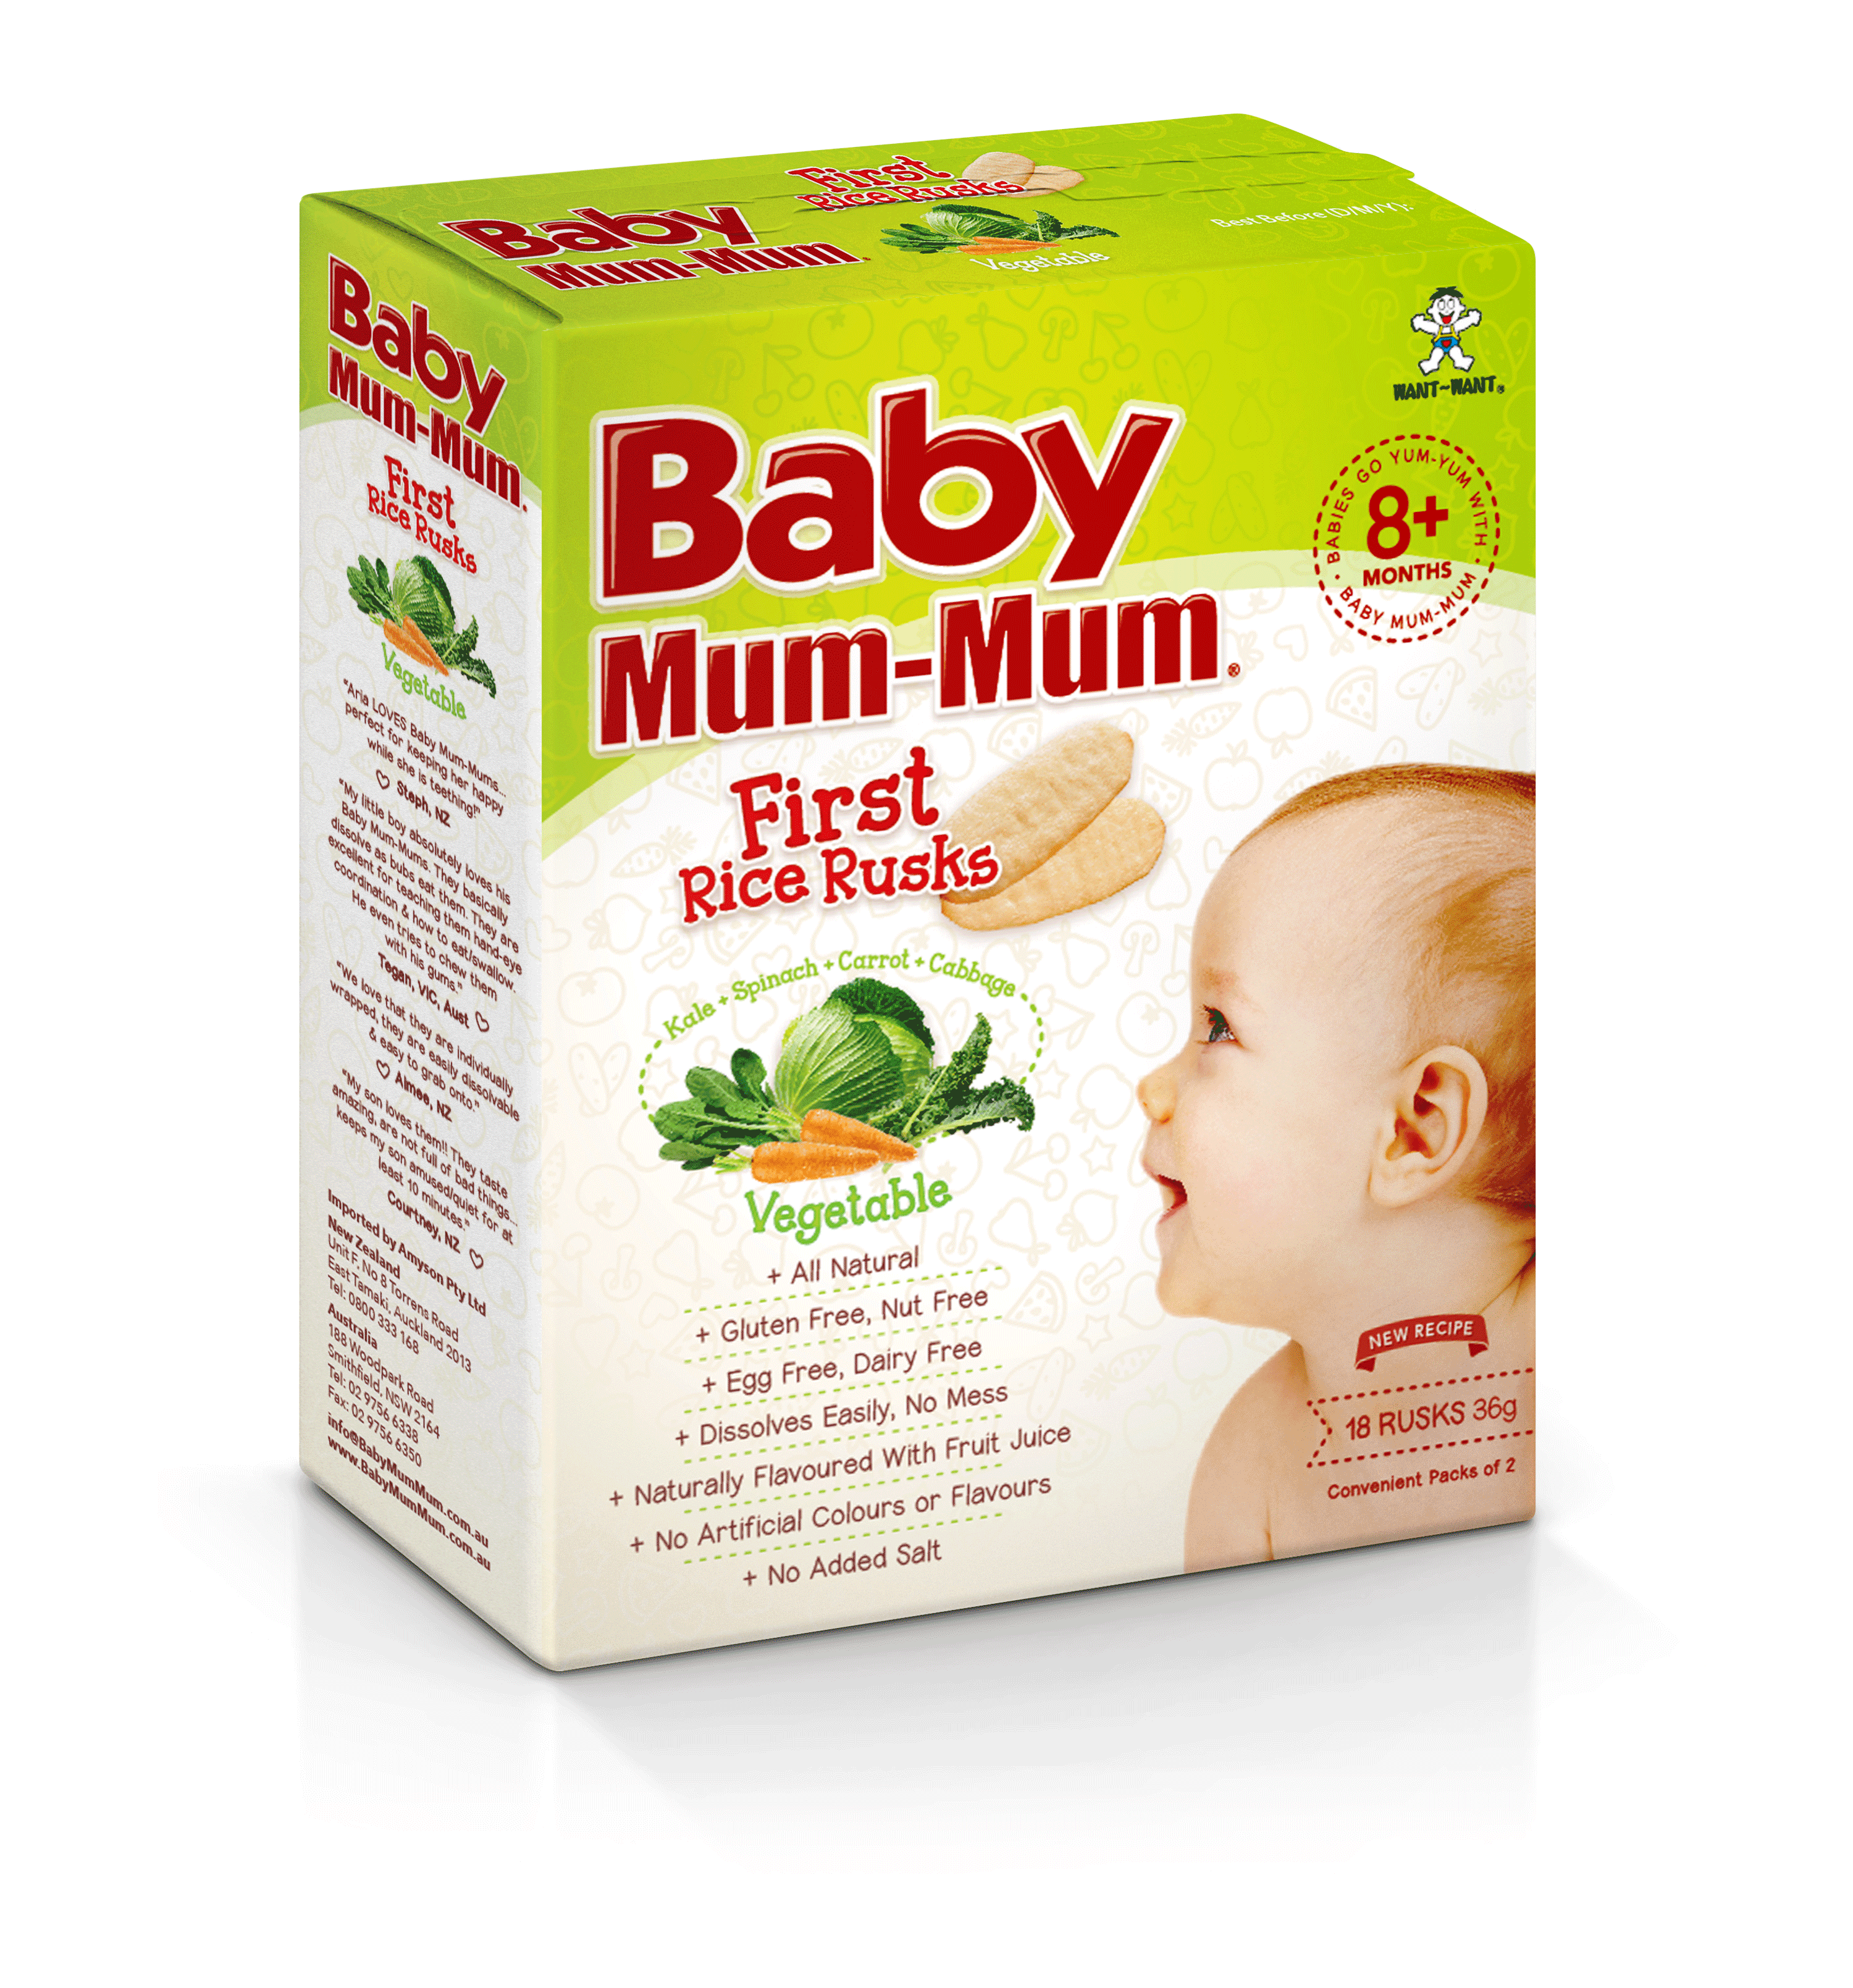 Baby Mum-Mum First Rice Rusk Vegetable Flavour